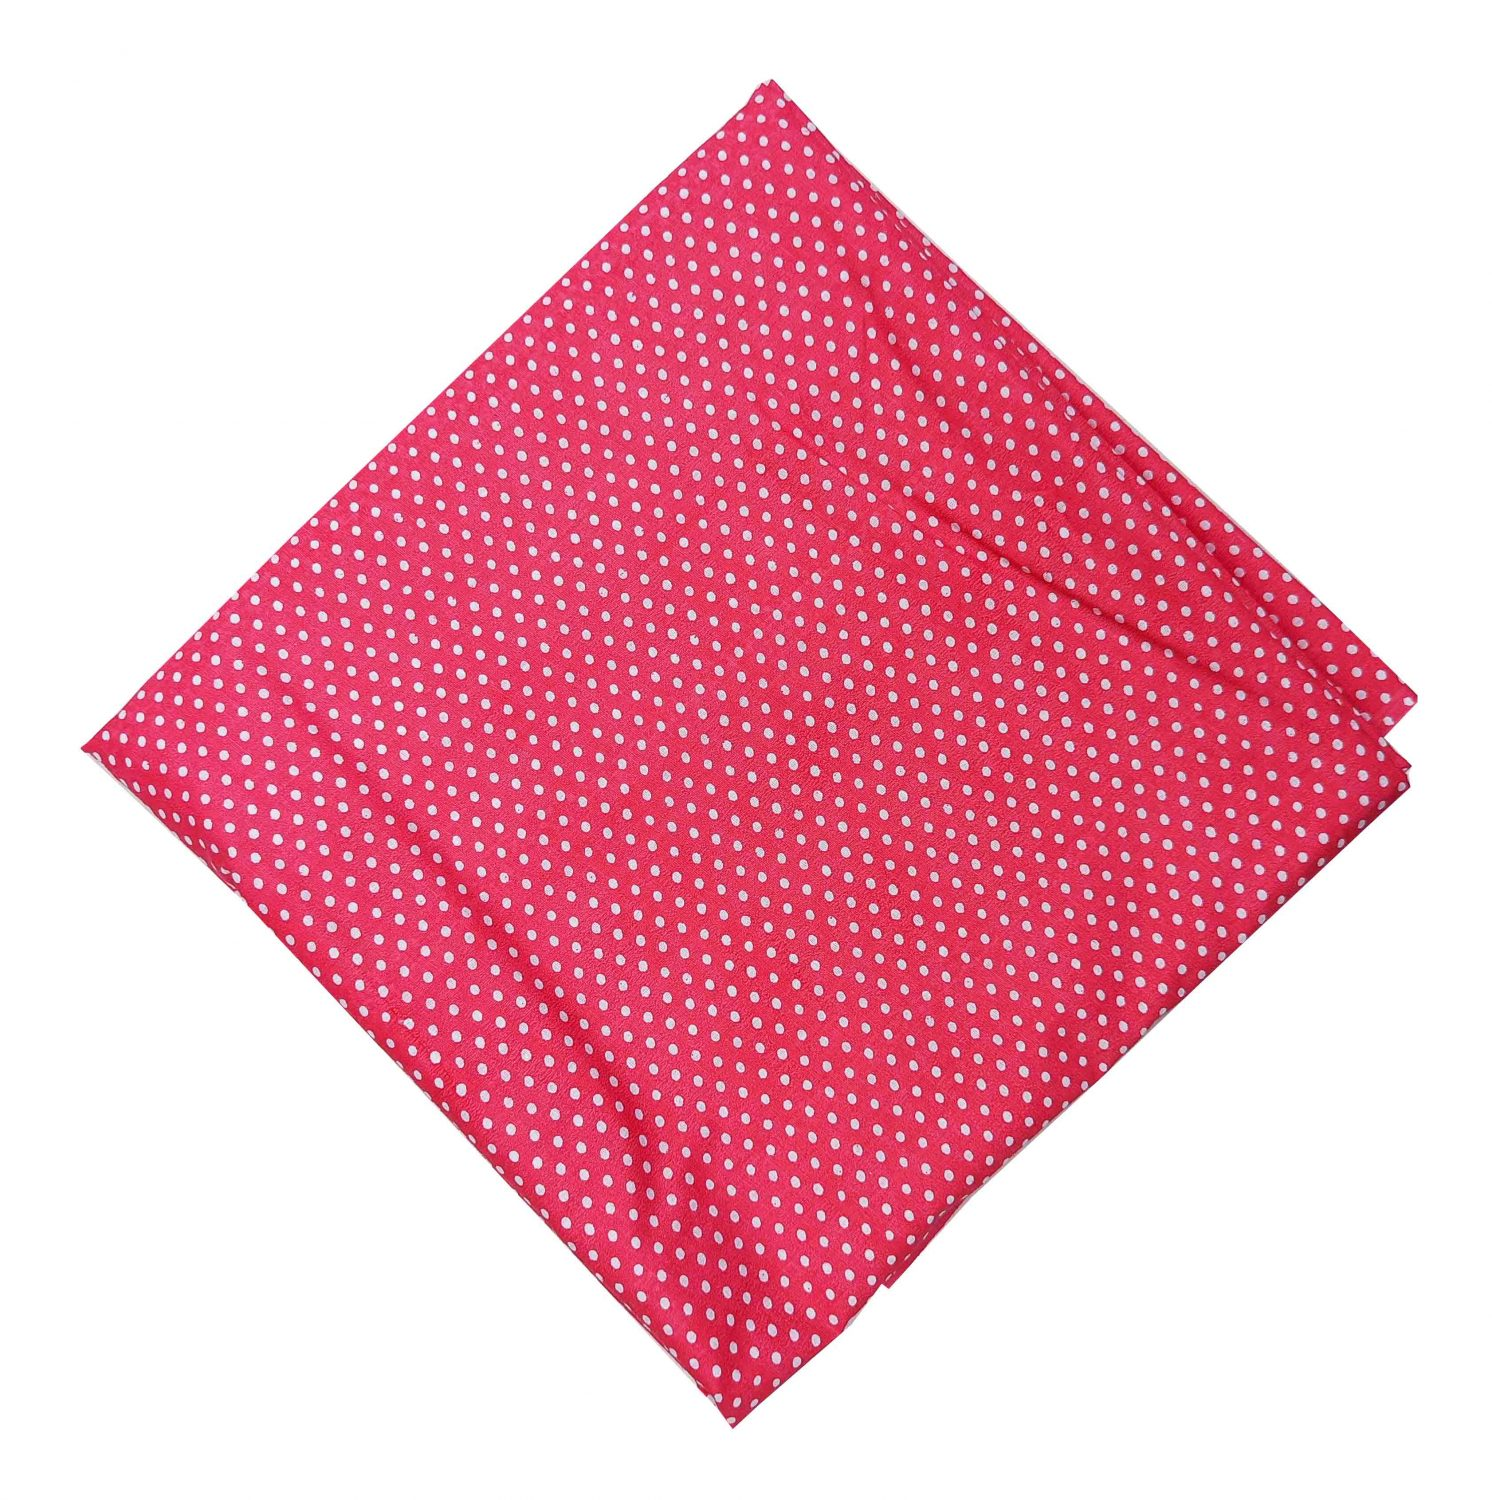 Magenta Polka Dots Printed Cotton Fabric PC532 1